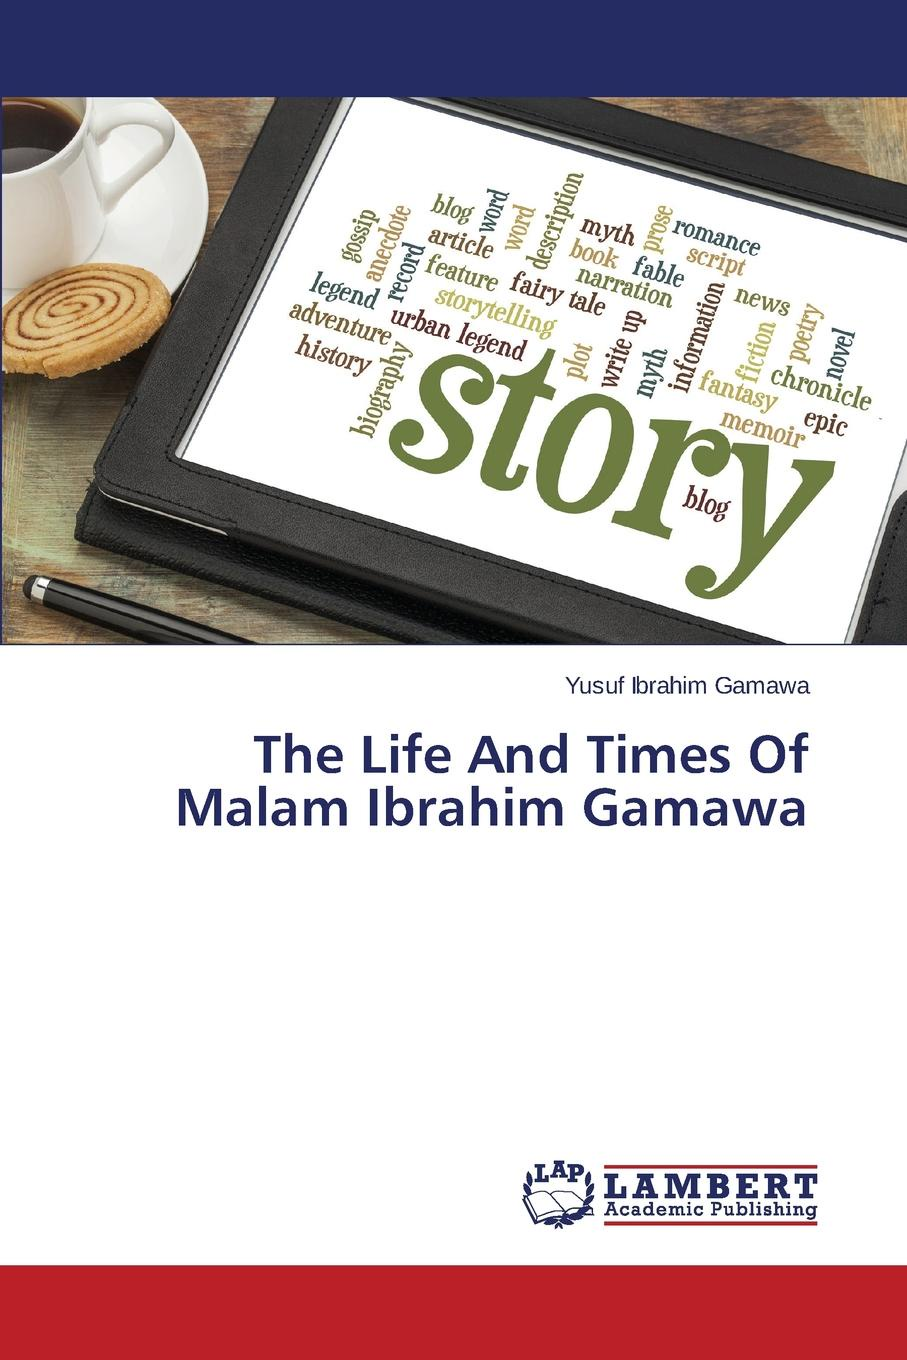 лучшая цена Ibrahim Gamawa Yusuf The Life And Times Of Malam Ibrahim Gamawa